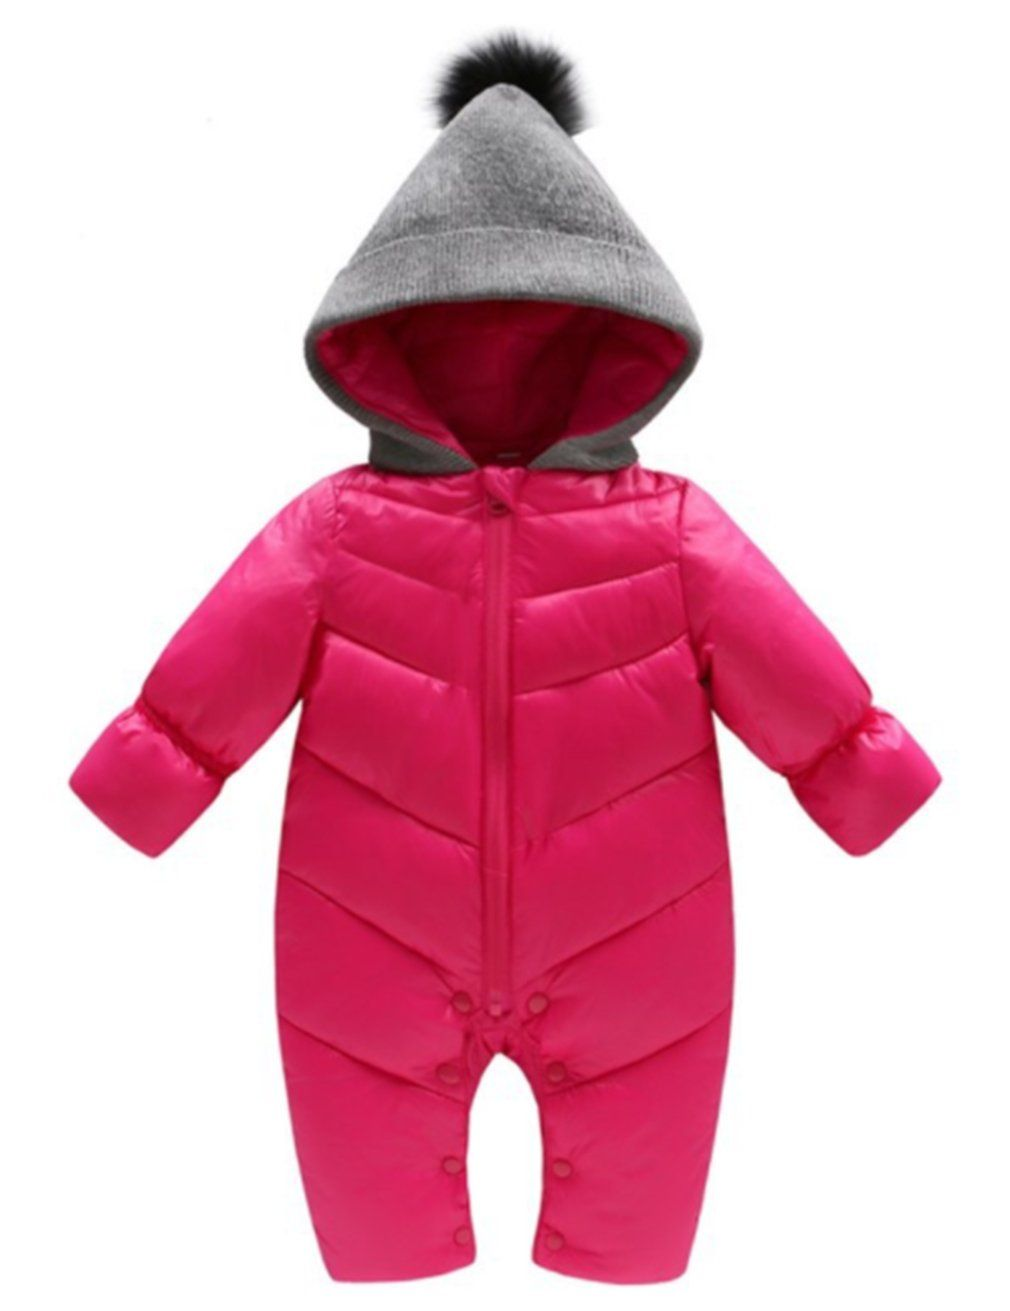 d20c5978263 Toddler Baby Boys Girls Puffer Down Hooded Romper Winter Warm Thick Onesies Jumpsuit  Outfits (6